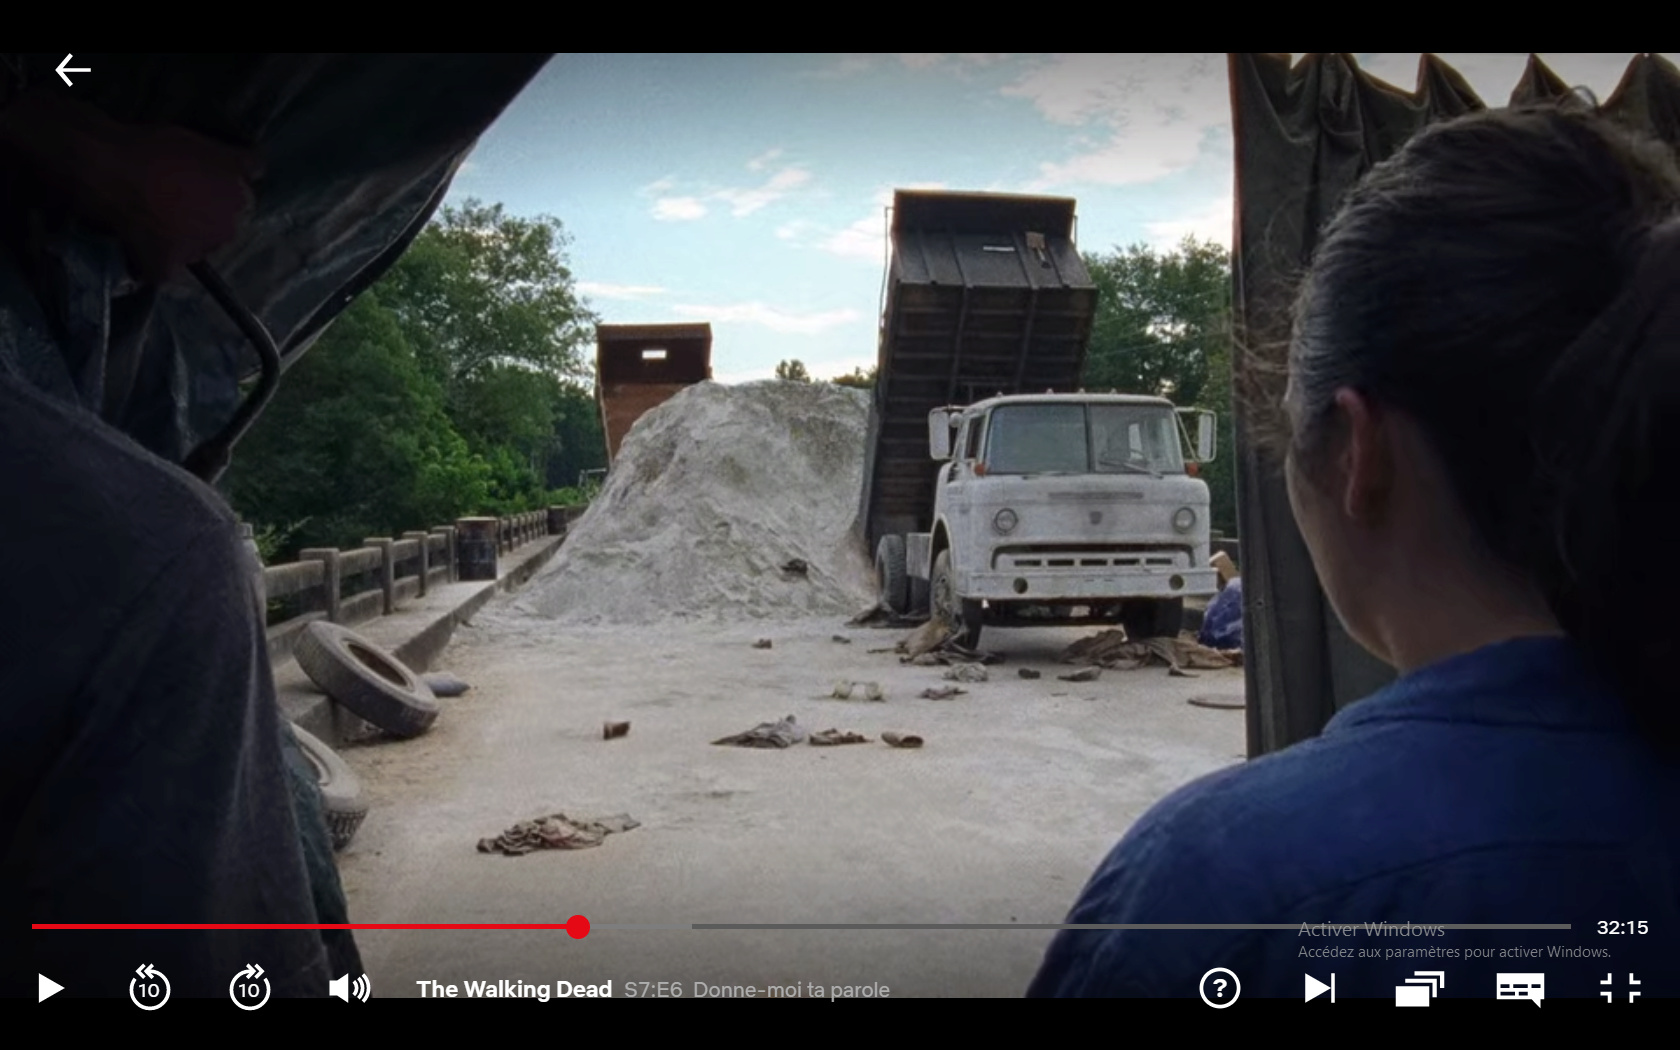 The Walking dead, storybording with Google Earth and Street View - Page 6 Captur18